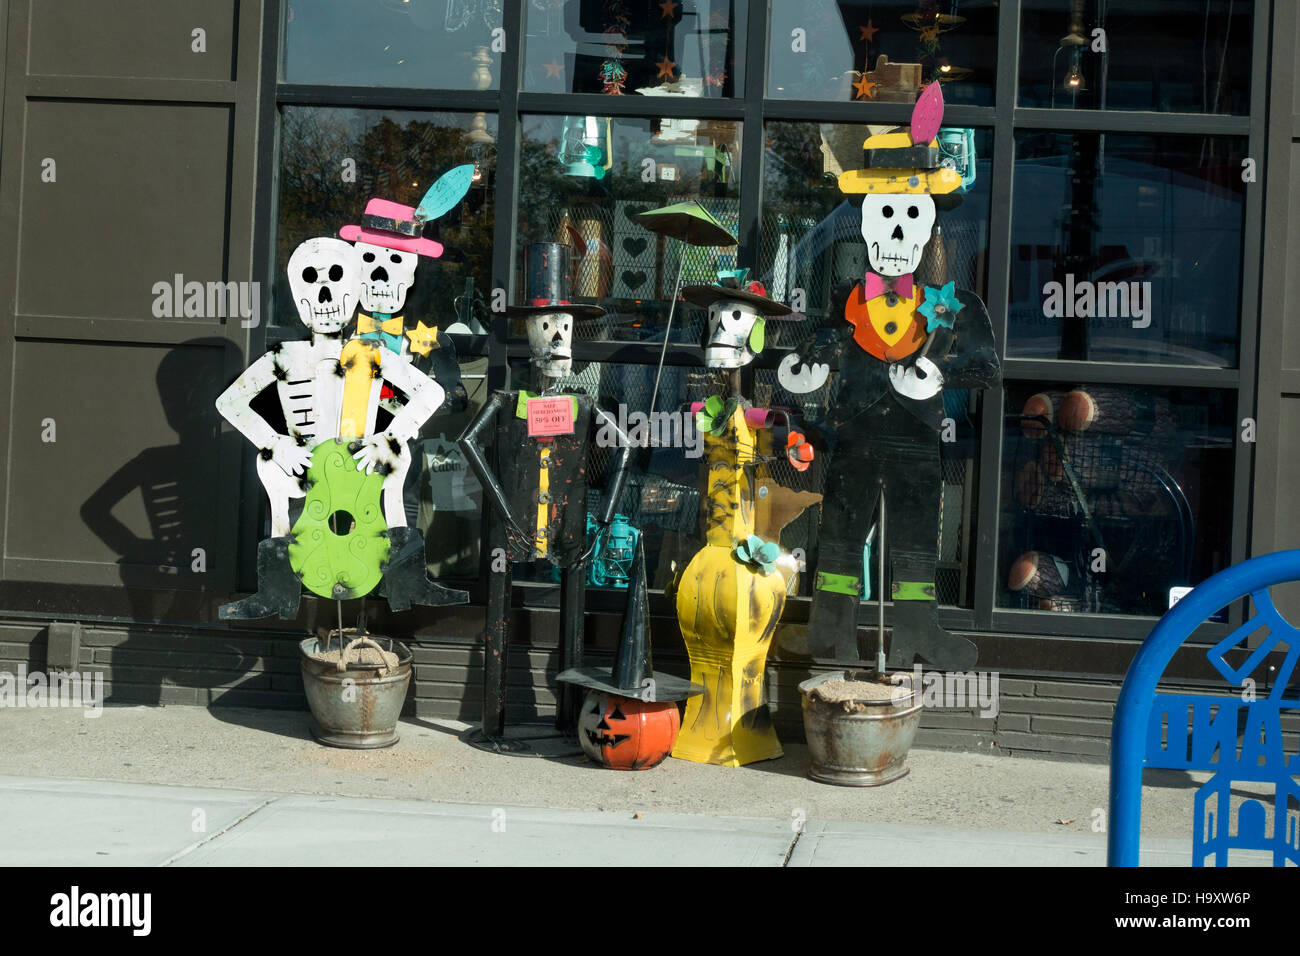 Formally dressed, artistic welded sheet metal Halloween skeletons and jack-o'-lantern at gift shop. St Paul - Stock Image